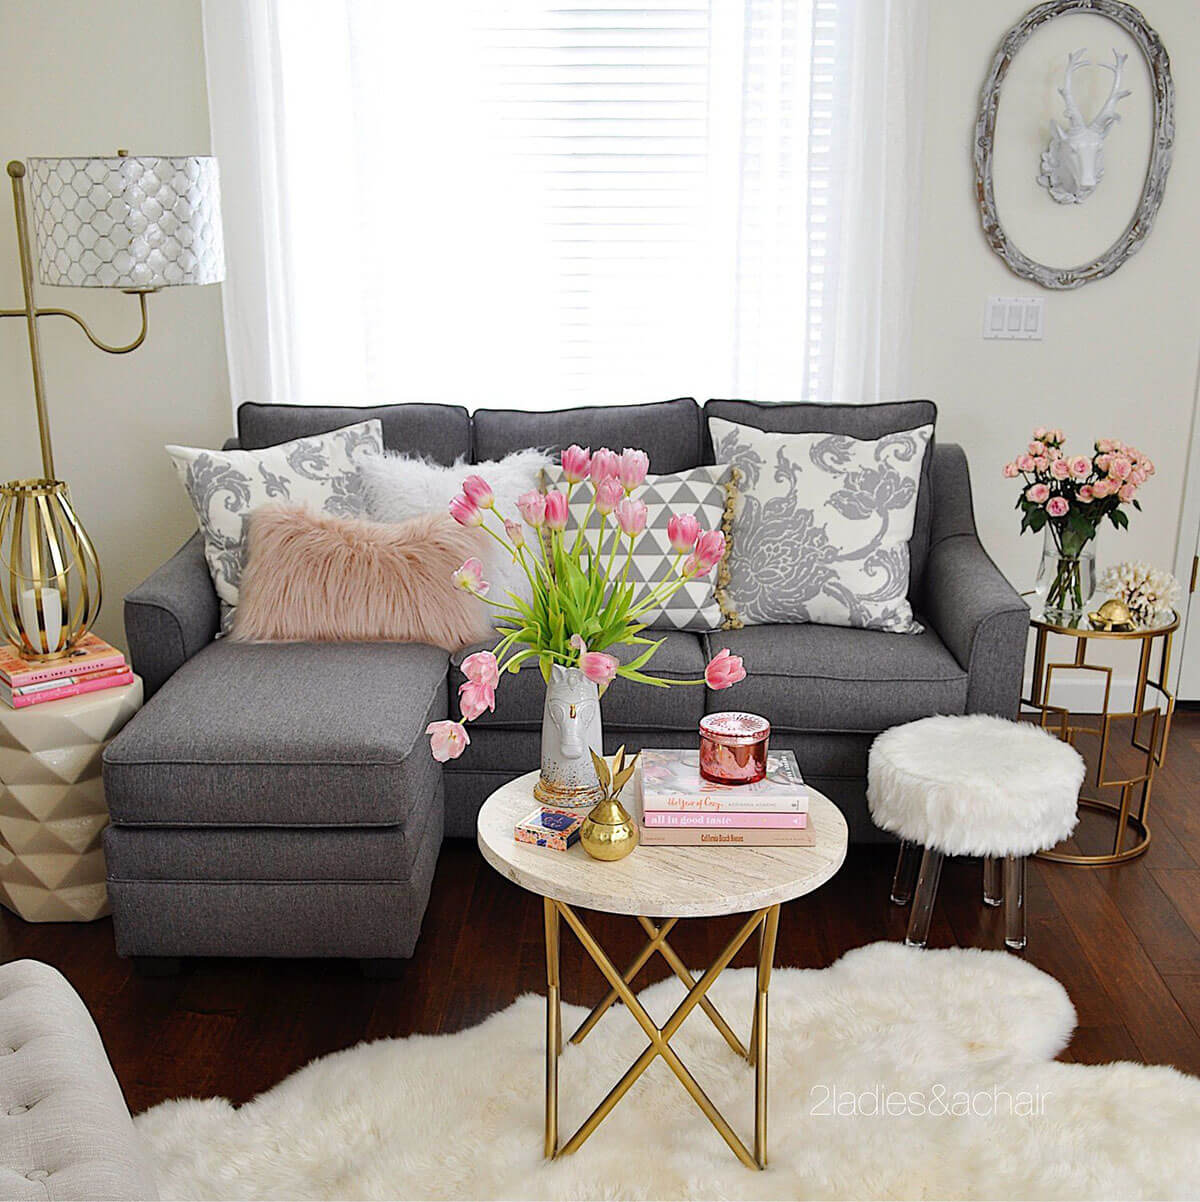 Living Room Ideas: 25+ Best Small Living Room Decor And Design Ideas For 2019